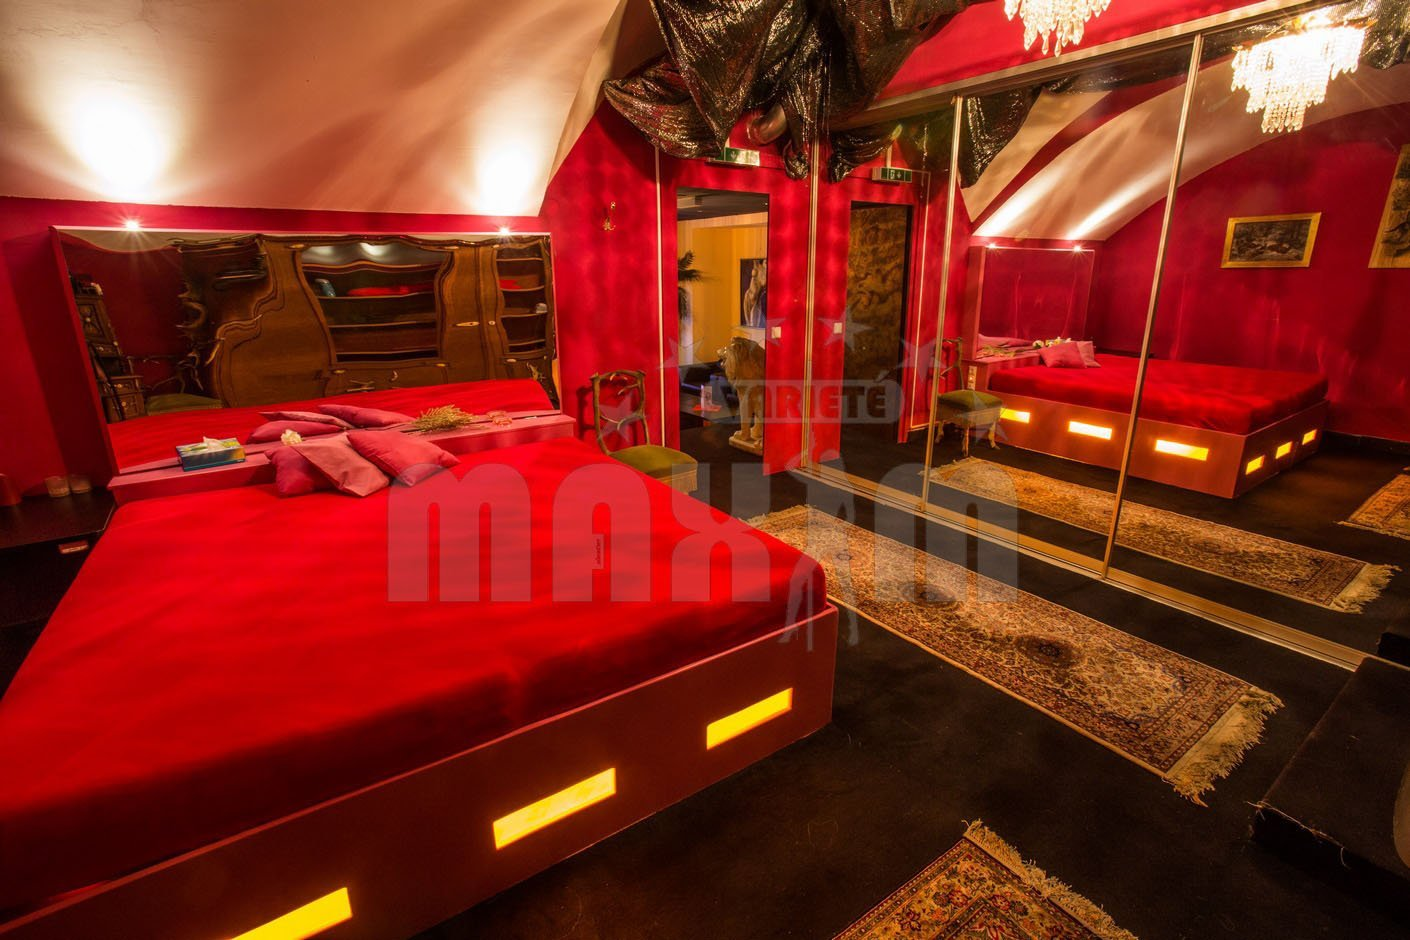 King size bed in Maxim Wien Stripclub